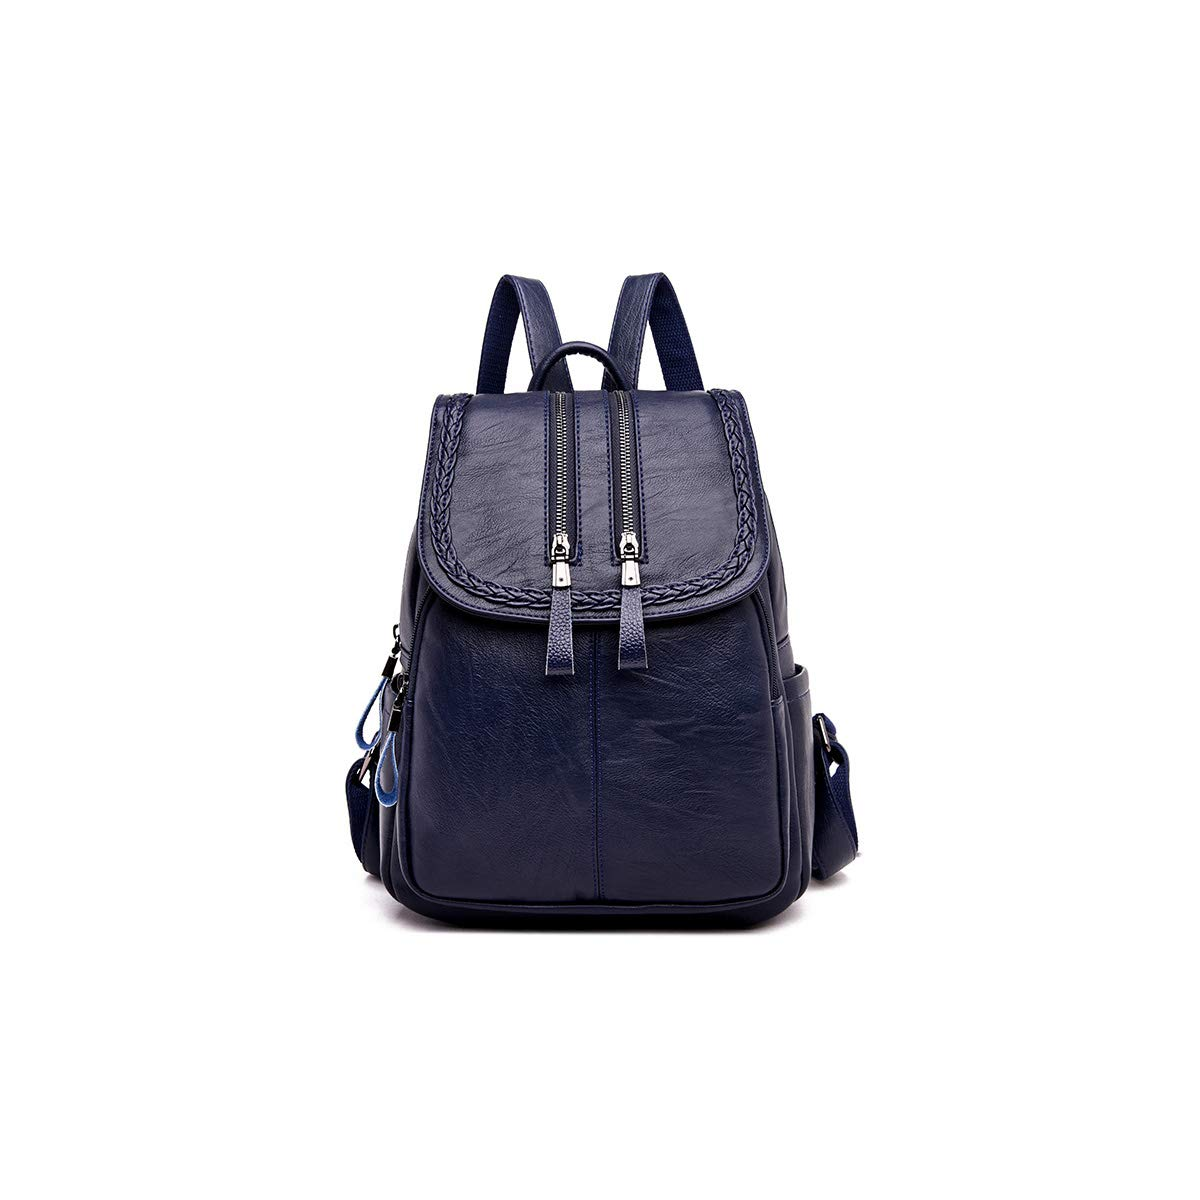 Simple Fashion Black//Red//Blue Haoyushangmao Girls Multifunctional Backpack for Daily Travel//Tourism//School//Work//Fashion//Leisure PU Leather Color : Blue, Size : 26cm31cm11cm